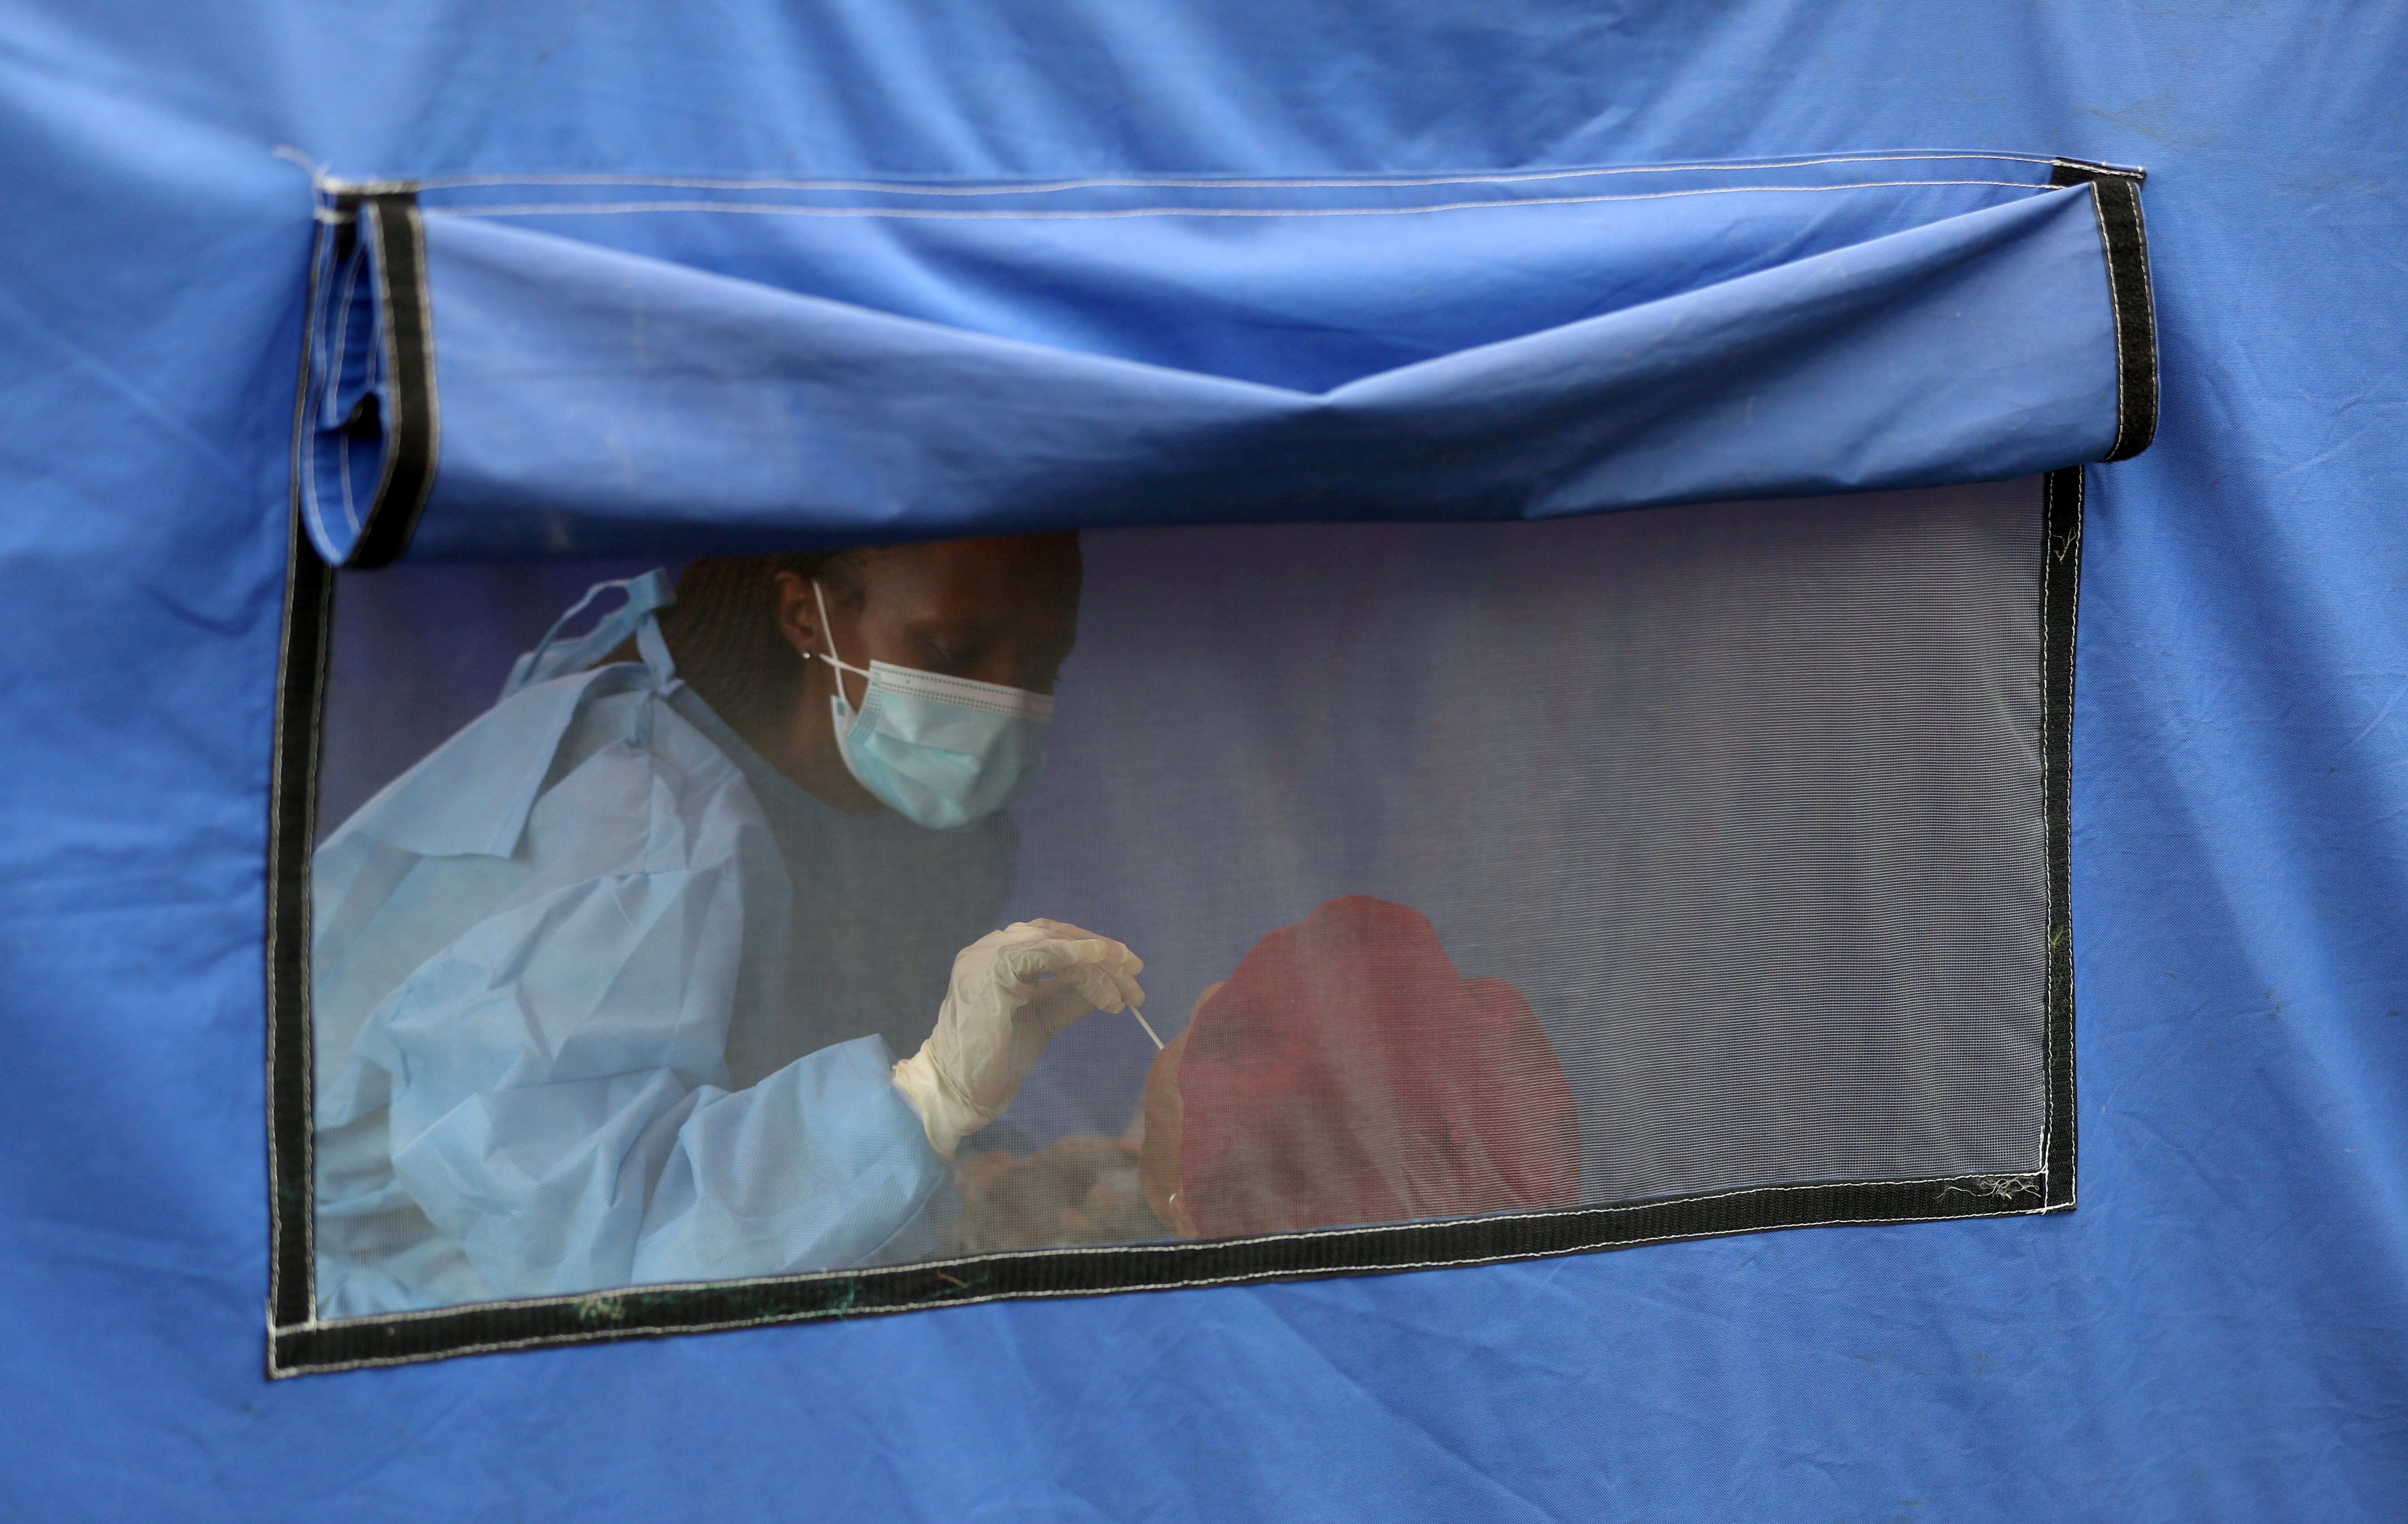 A traveller is tested for the coronavirus disease amid a nationwide COVID-19 lockdown, at the Grasmere Toll Plaza, in Lenasia, South Africa, January 14, 2021. REUTERS/Siphiwe Sibeko